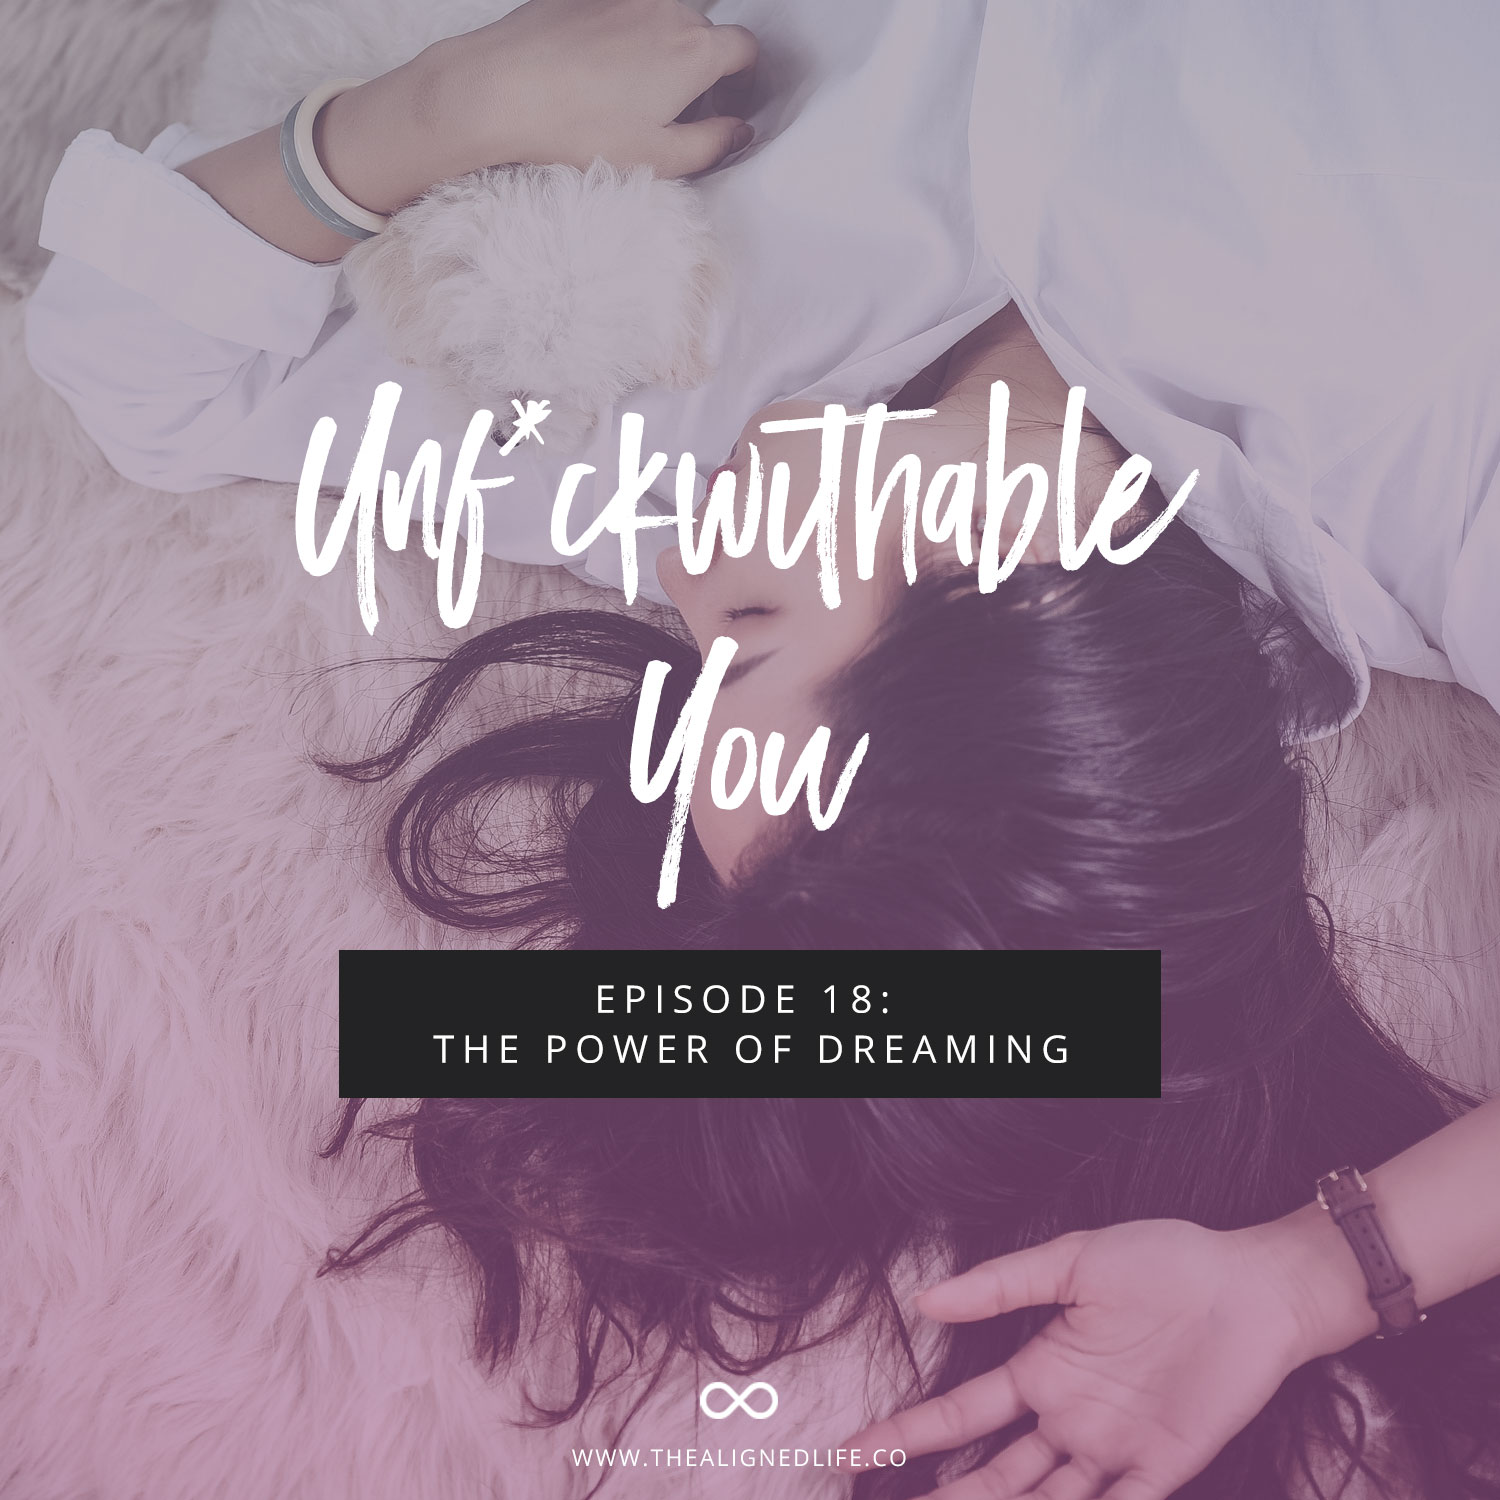 Unf*ckwithable You Episode 18: The Power Of Dreaming